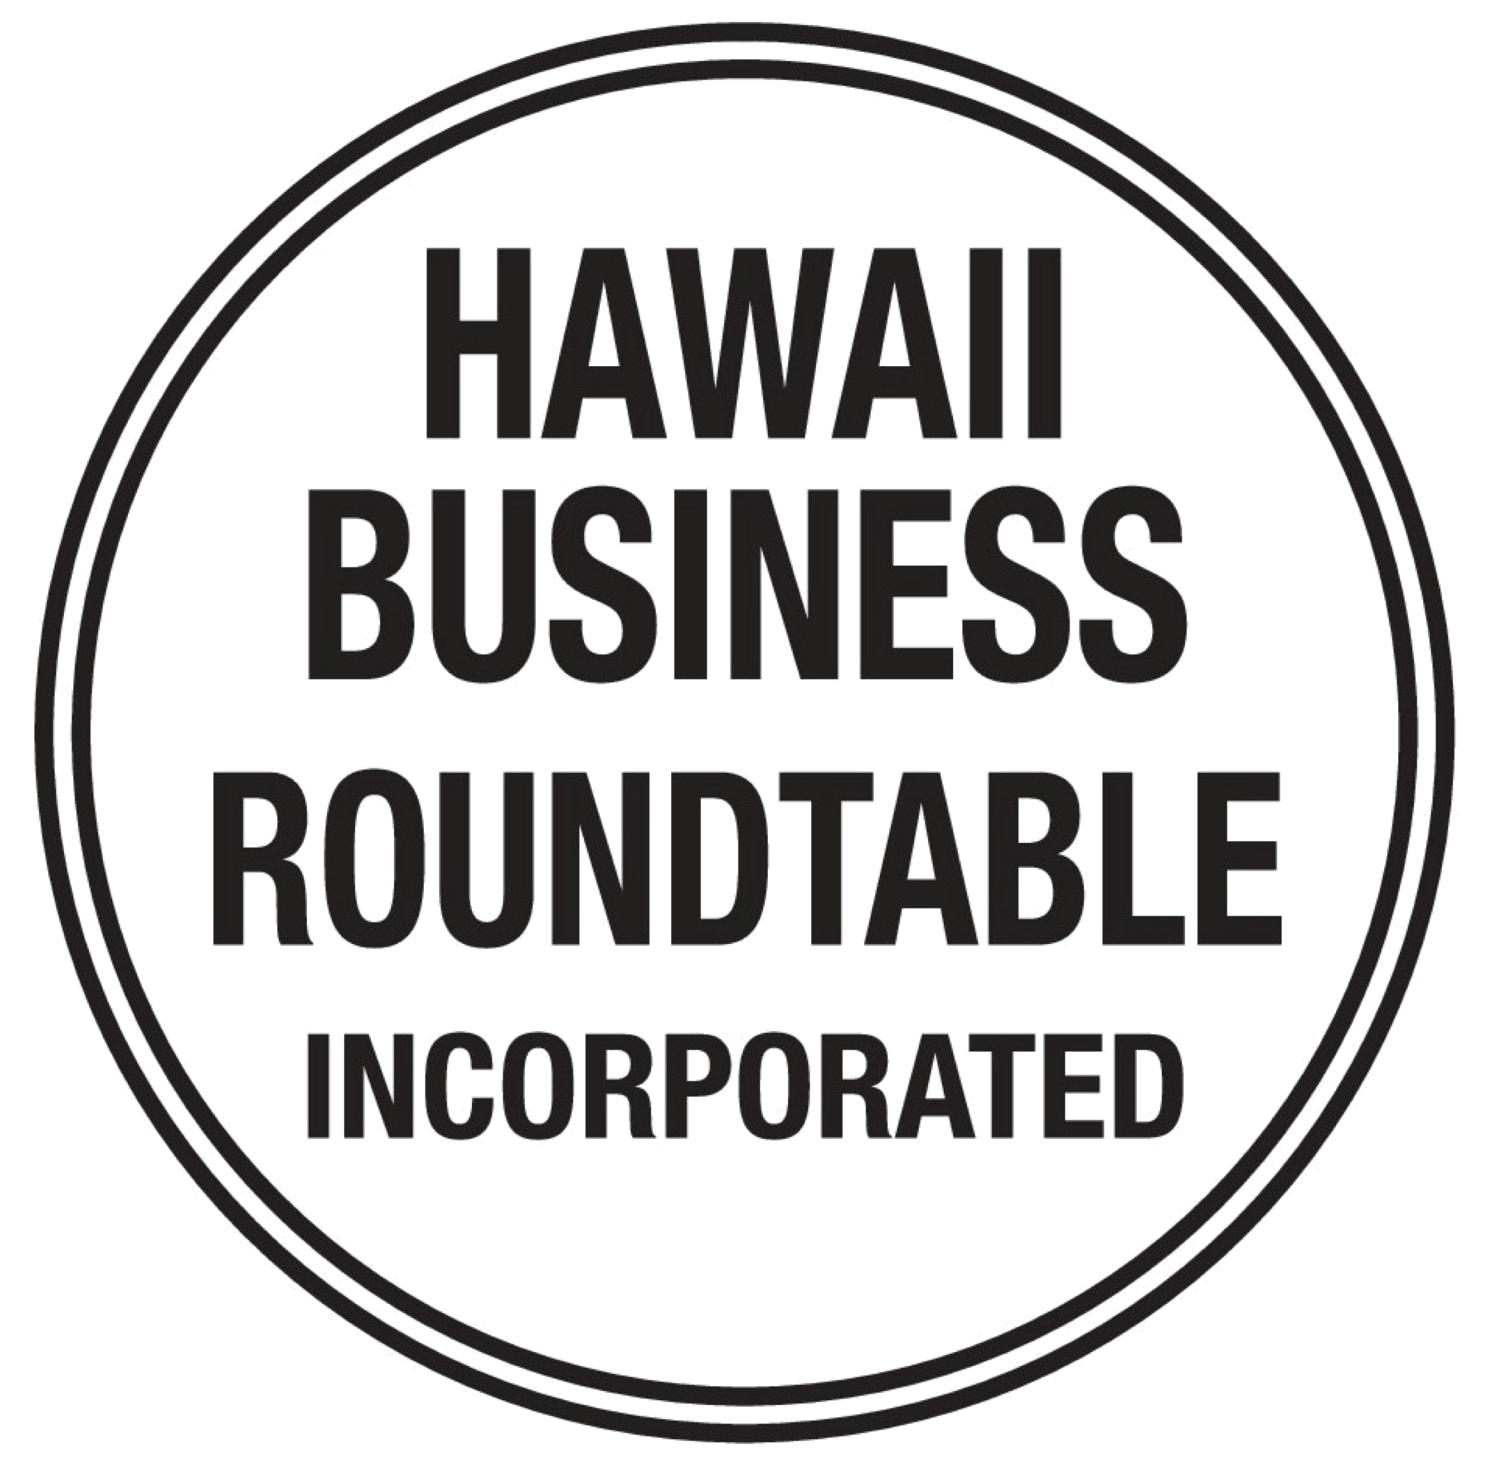 Hawaii Business Roundtable